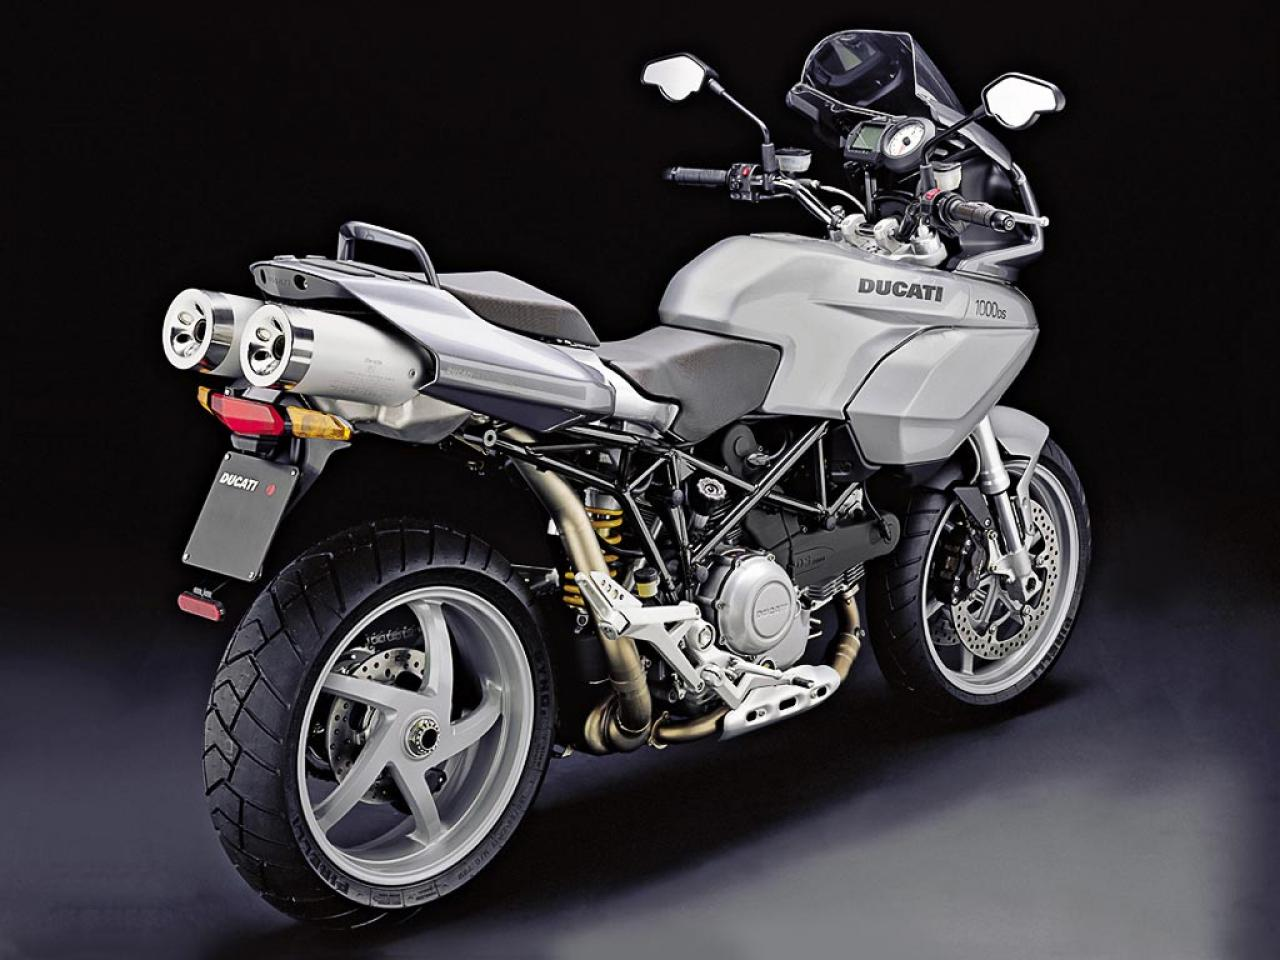 2005 ducati multistrada 1000 ds moto zombdrive com. Black Bedroom Furniture Sets. Home Design Ideas